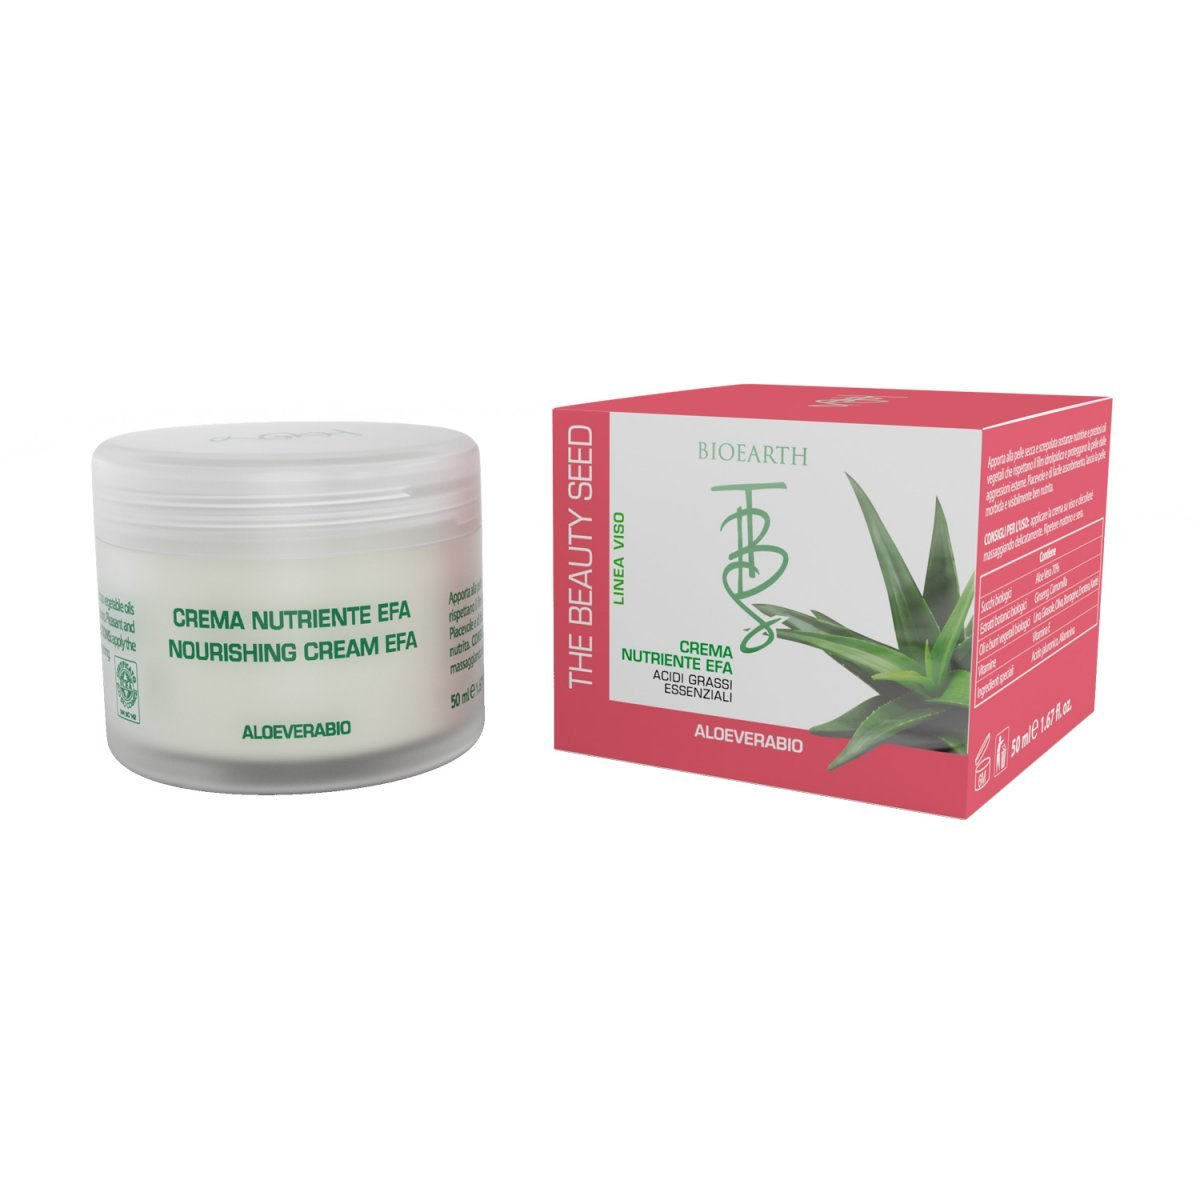 The Beauty Seed Nourishing cream Efa with Aloe